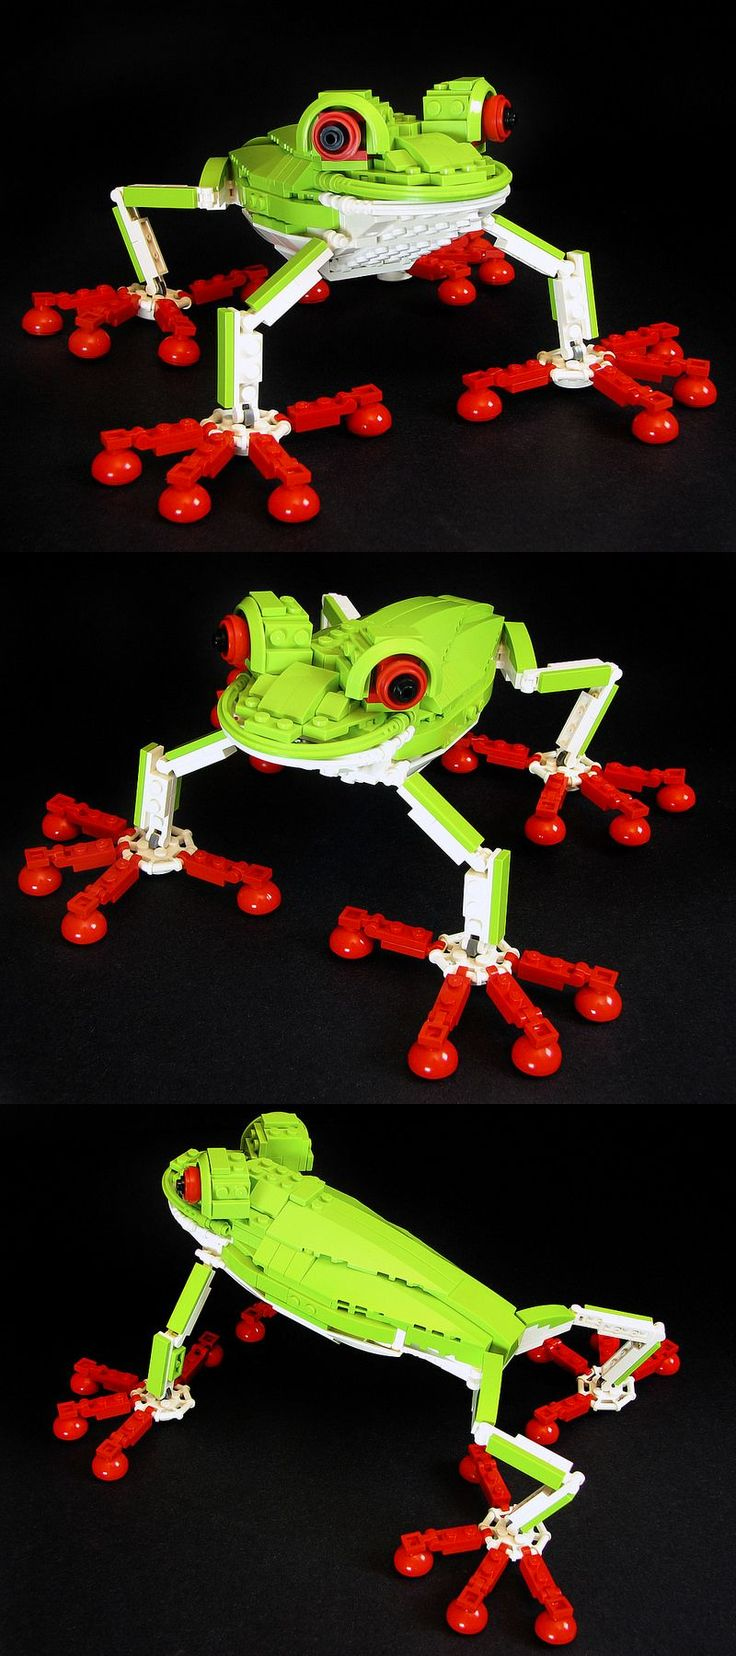 #LEGO Red-eyed Tree Frog.  He is awesome! Its lego but I would uae it as a coffie table sculpture- hence the art board